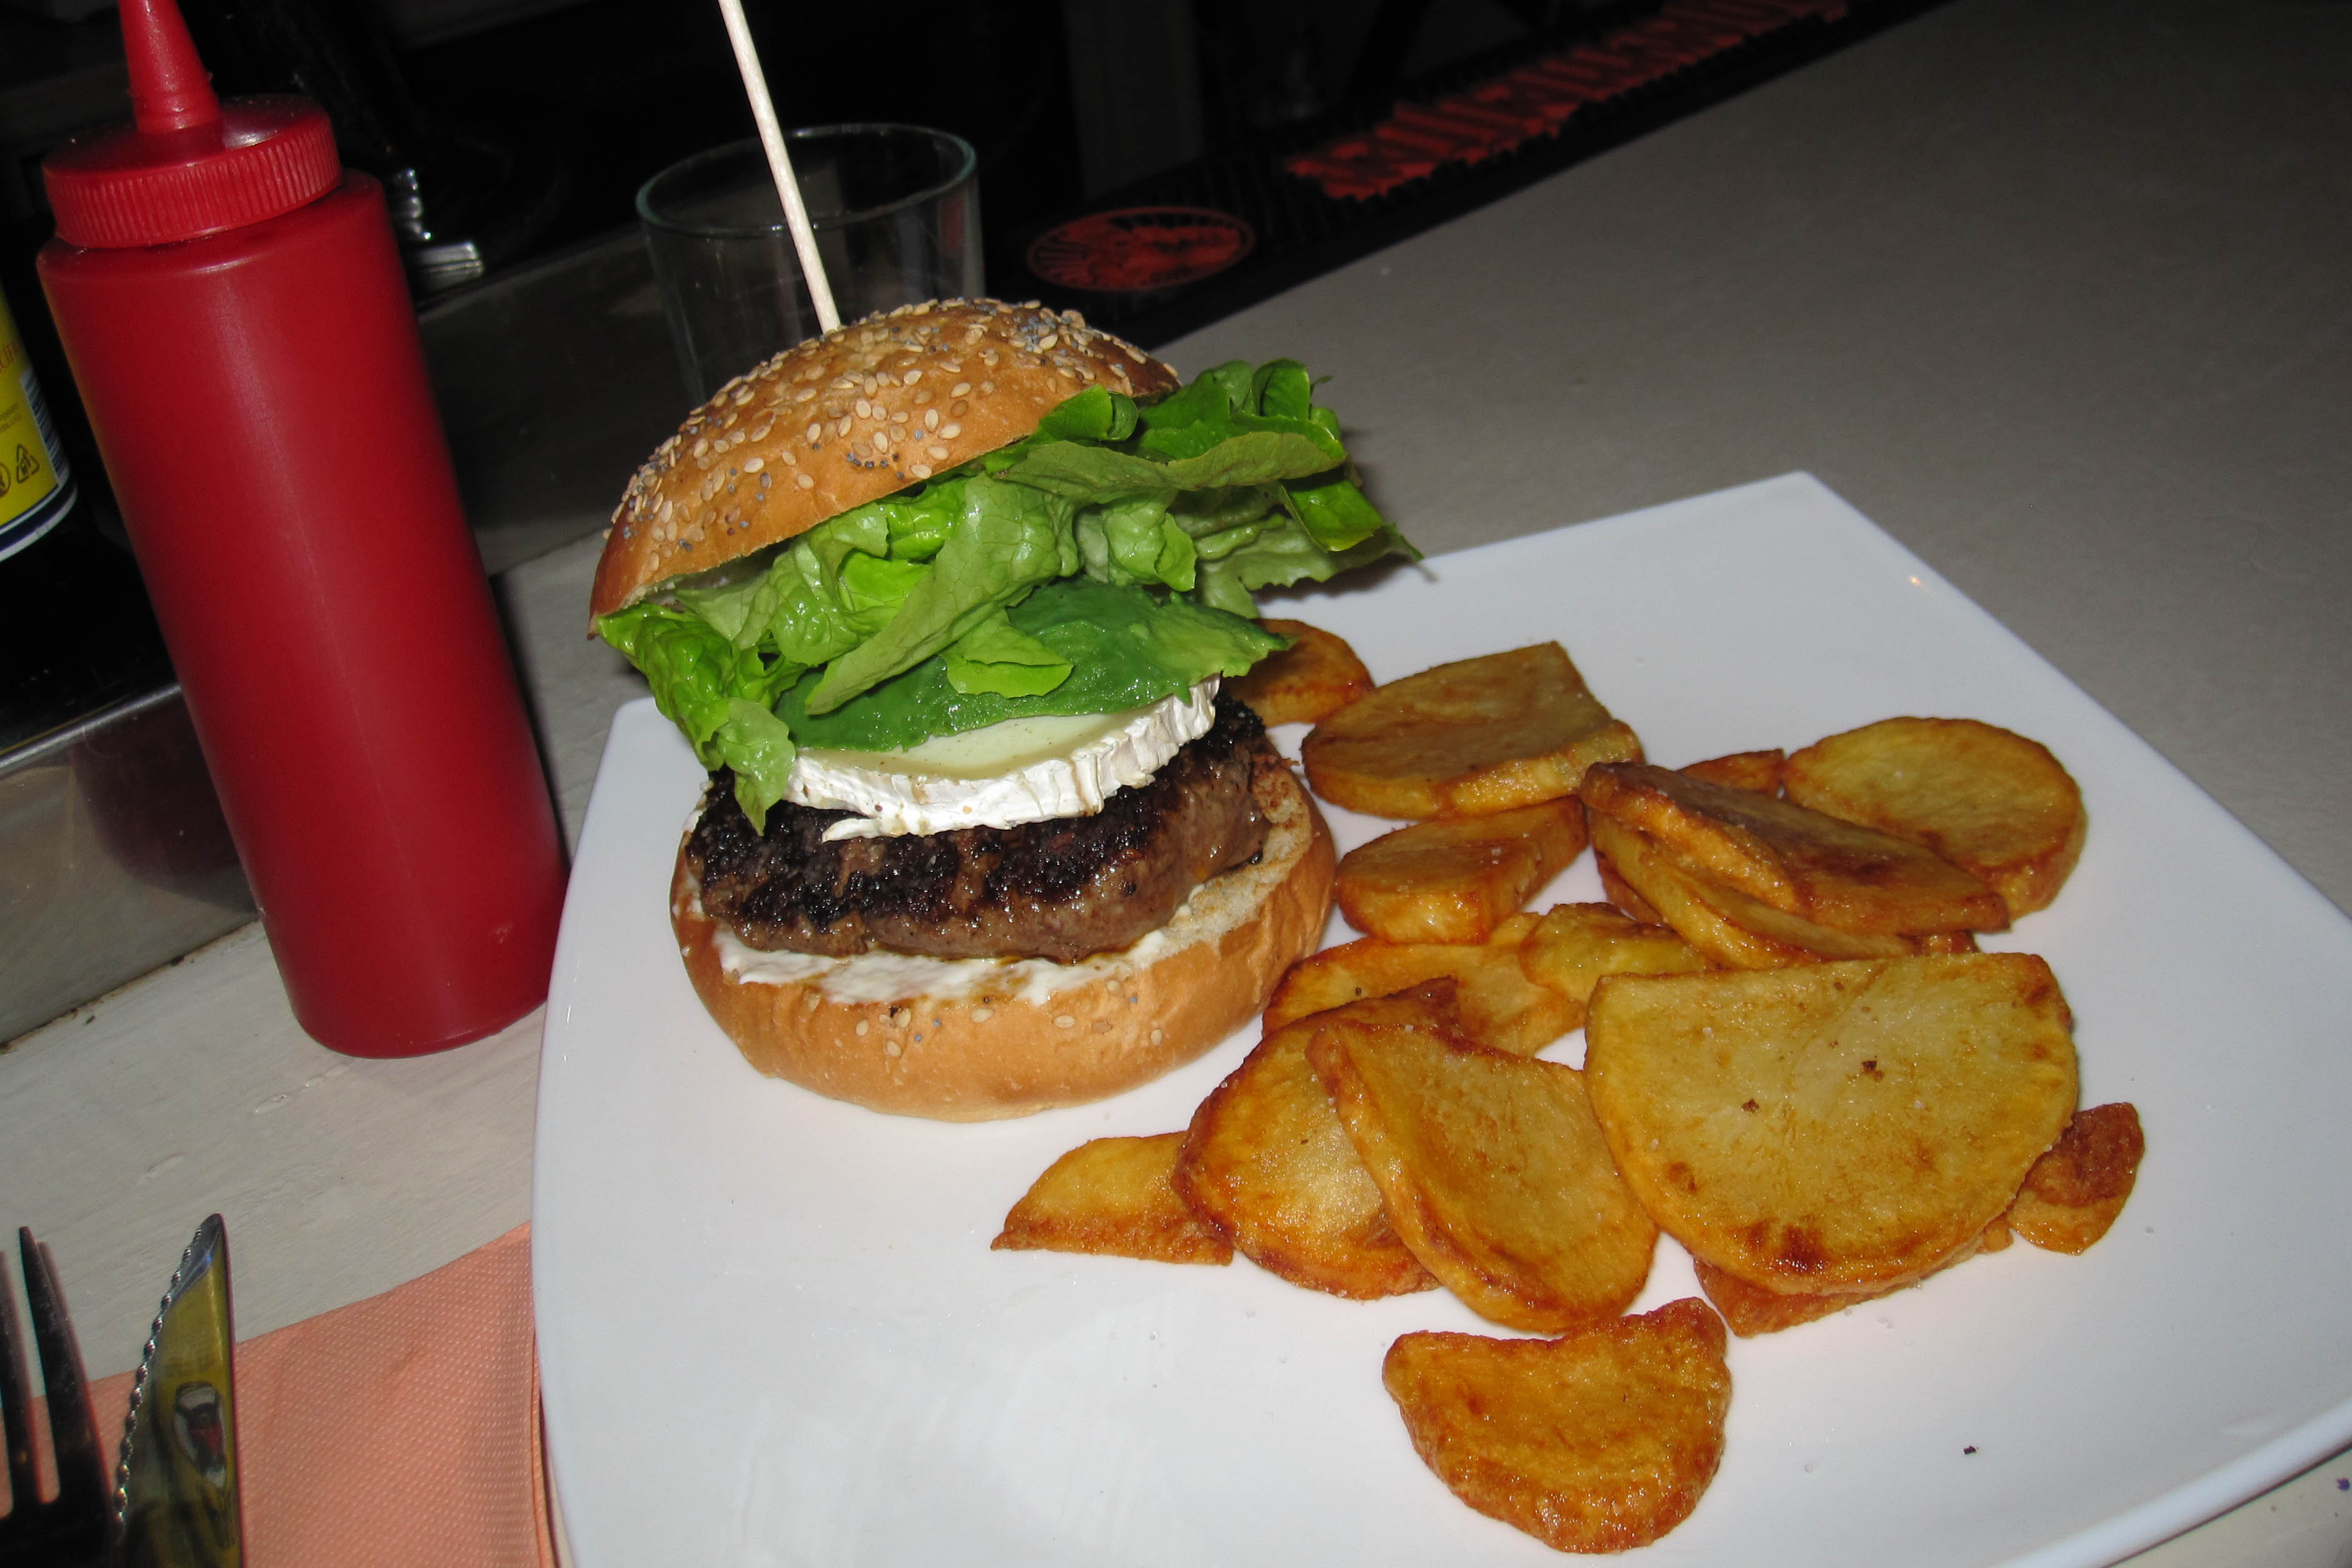 Intercambio & Burgers at Carmencita Bar